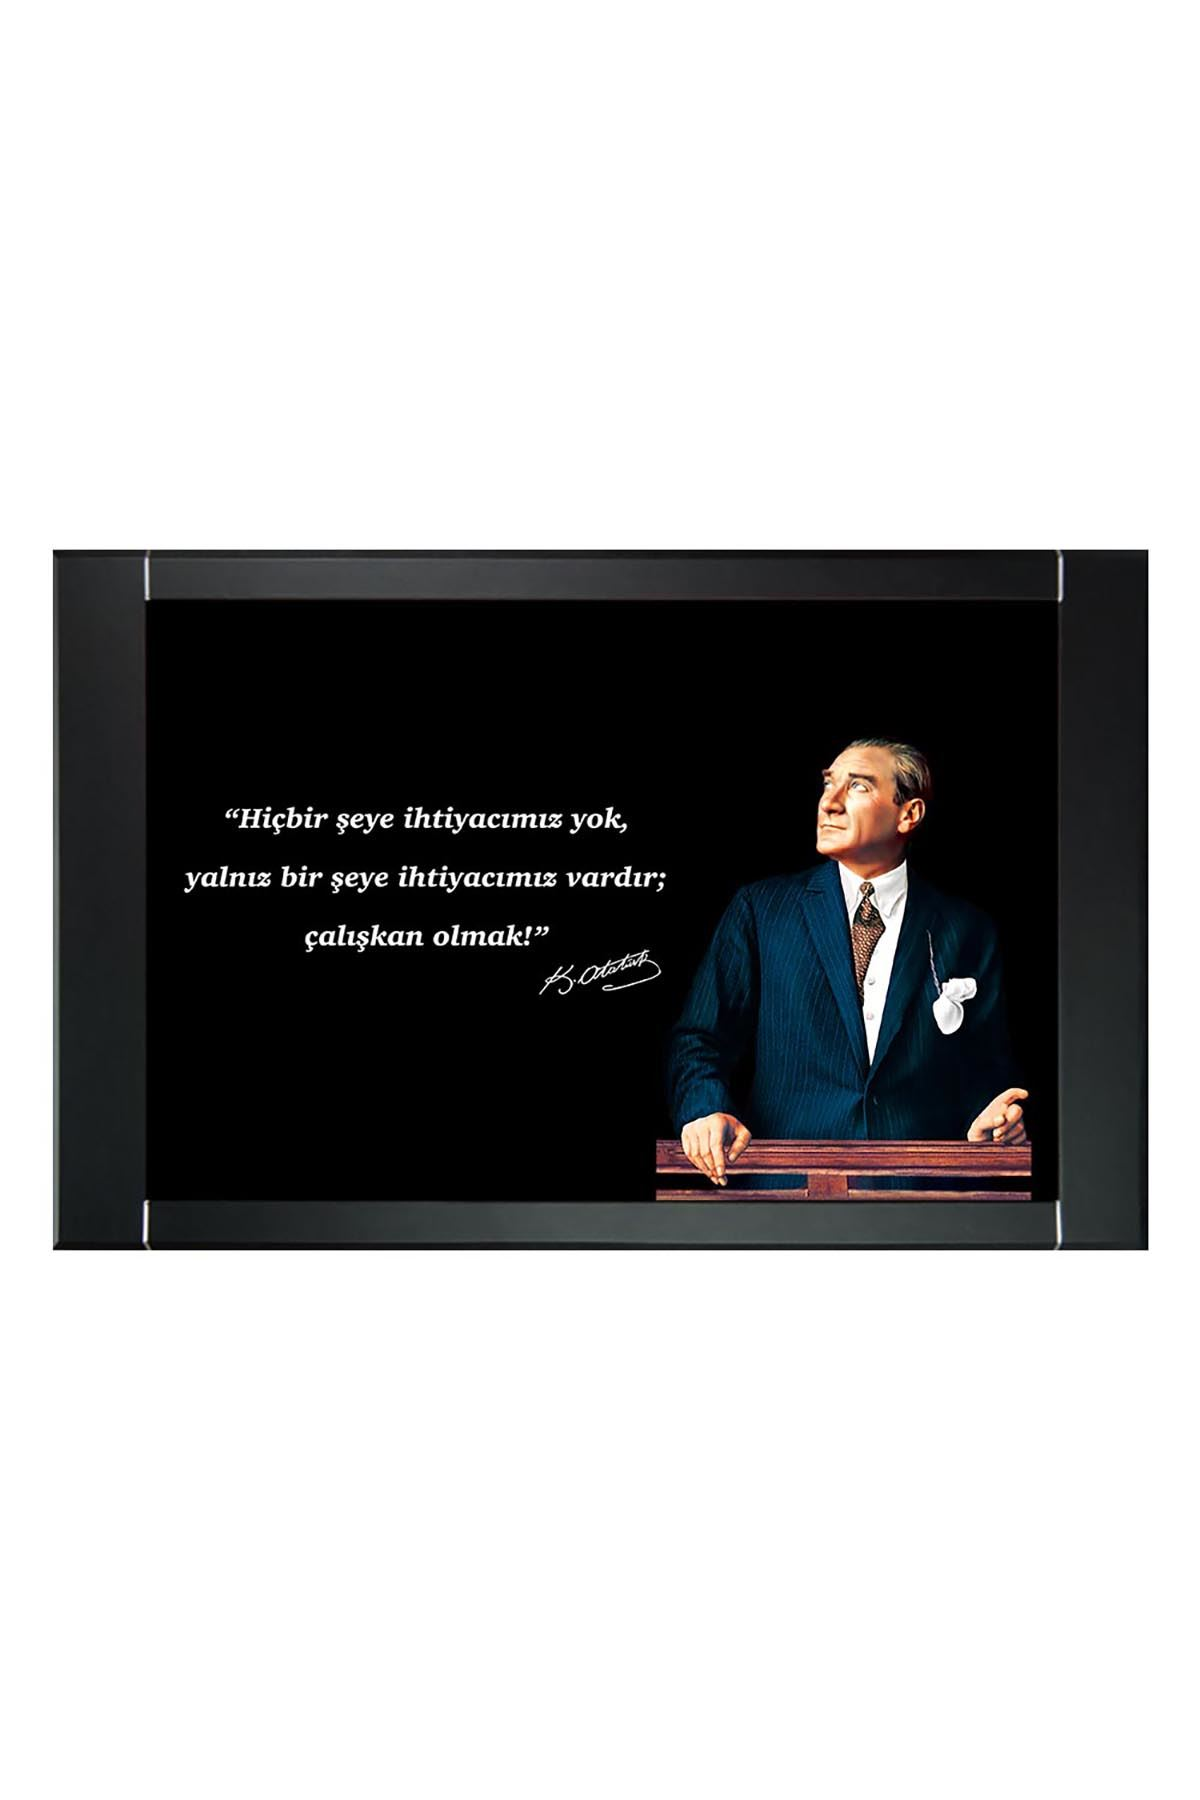 Atatürk in Council Printed Manager Board | Printed Manager Board | Leather Framed Board | High Quality Manager Board